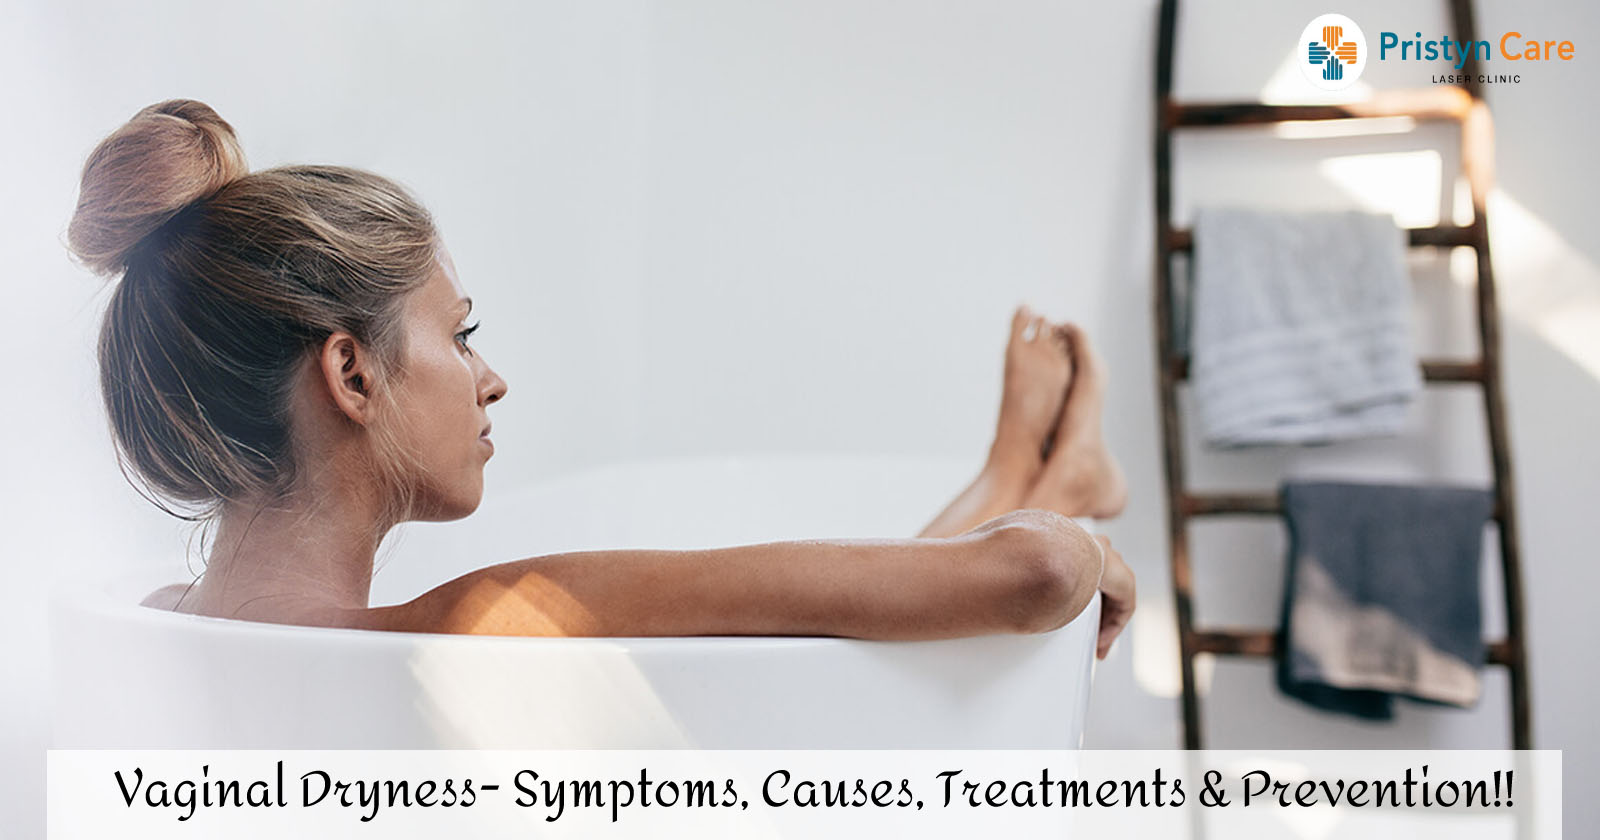 Vaginal Dryness- Symptoms, Causes, Treatments & Prevention!!